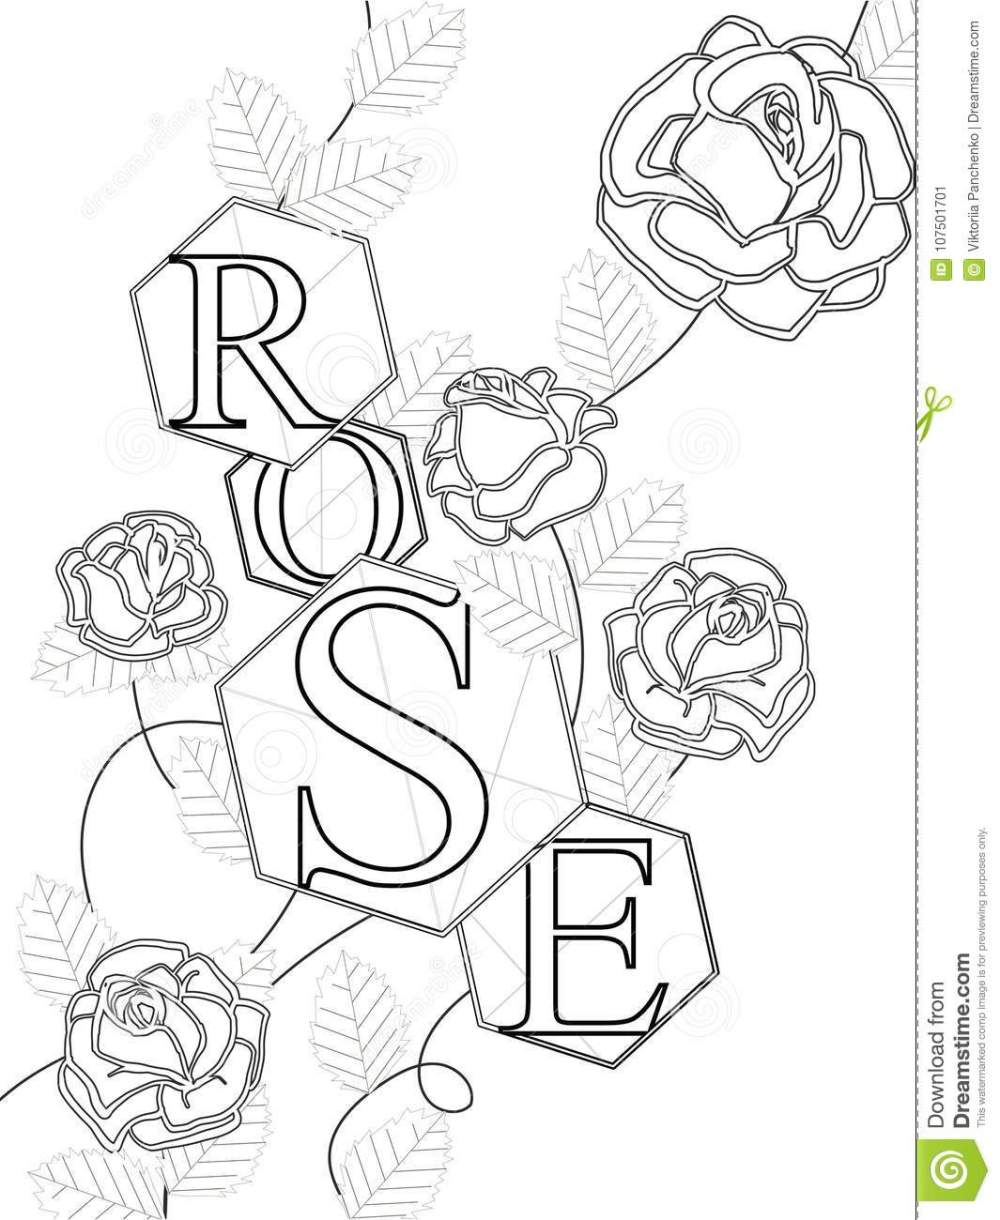 medium resolution of coloring roses with the inscription rose letters buds and leaves